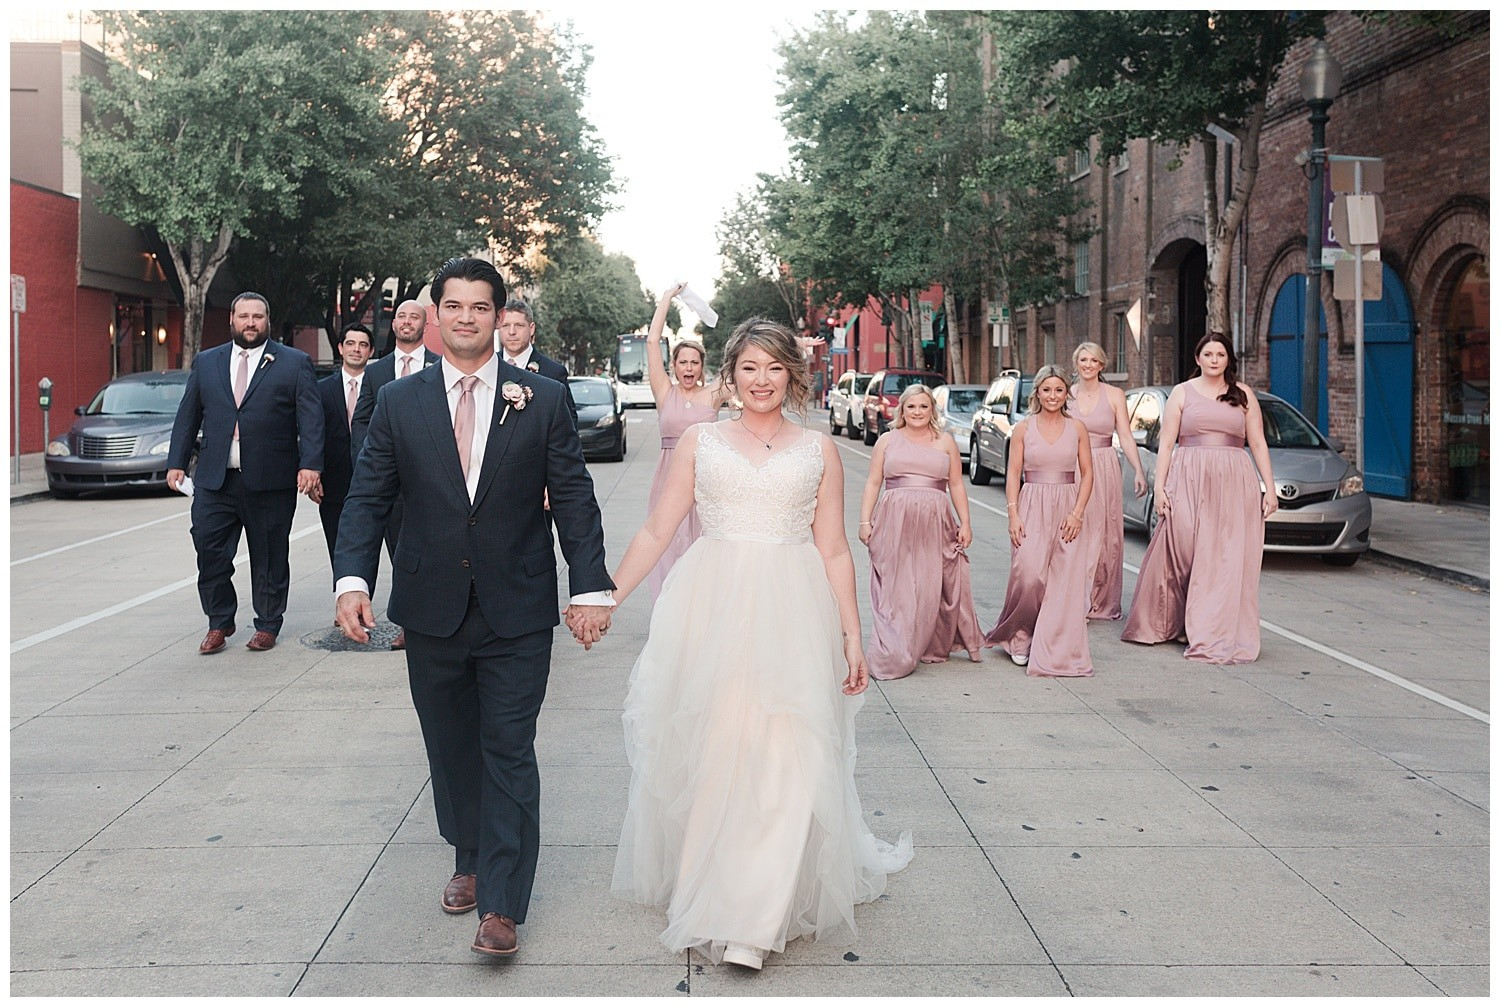 wedding party photos at Thomas Bistro in New Orleans by Swish and Click Photography